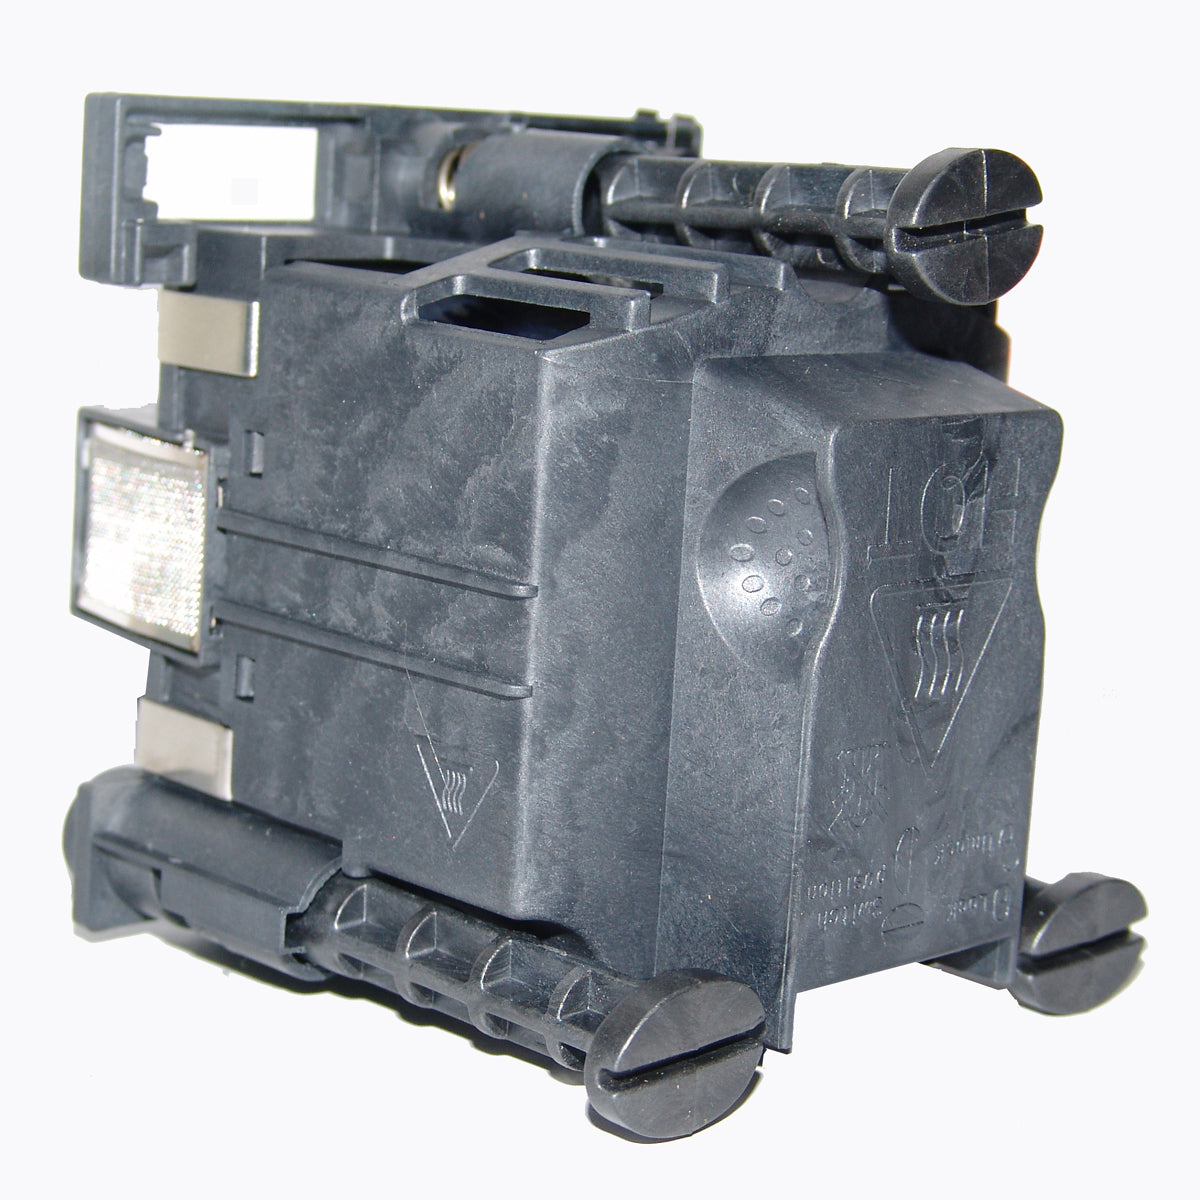 ProjectionDesign 400-0400-00 Osram Projector Lamp Module